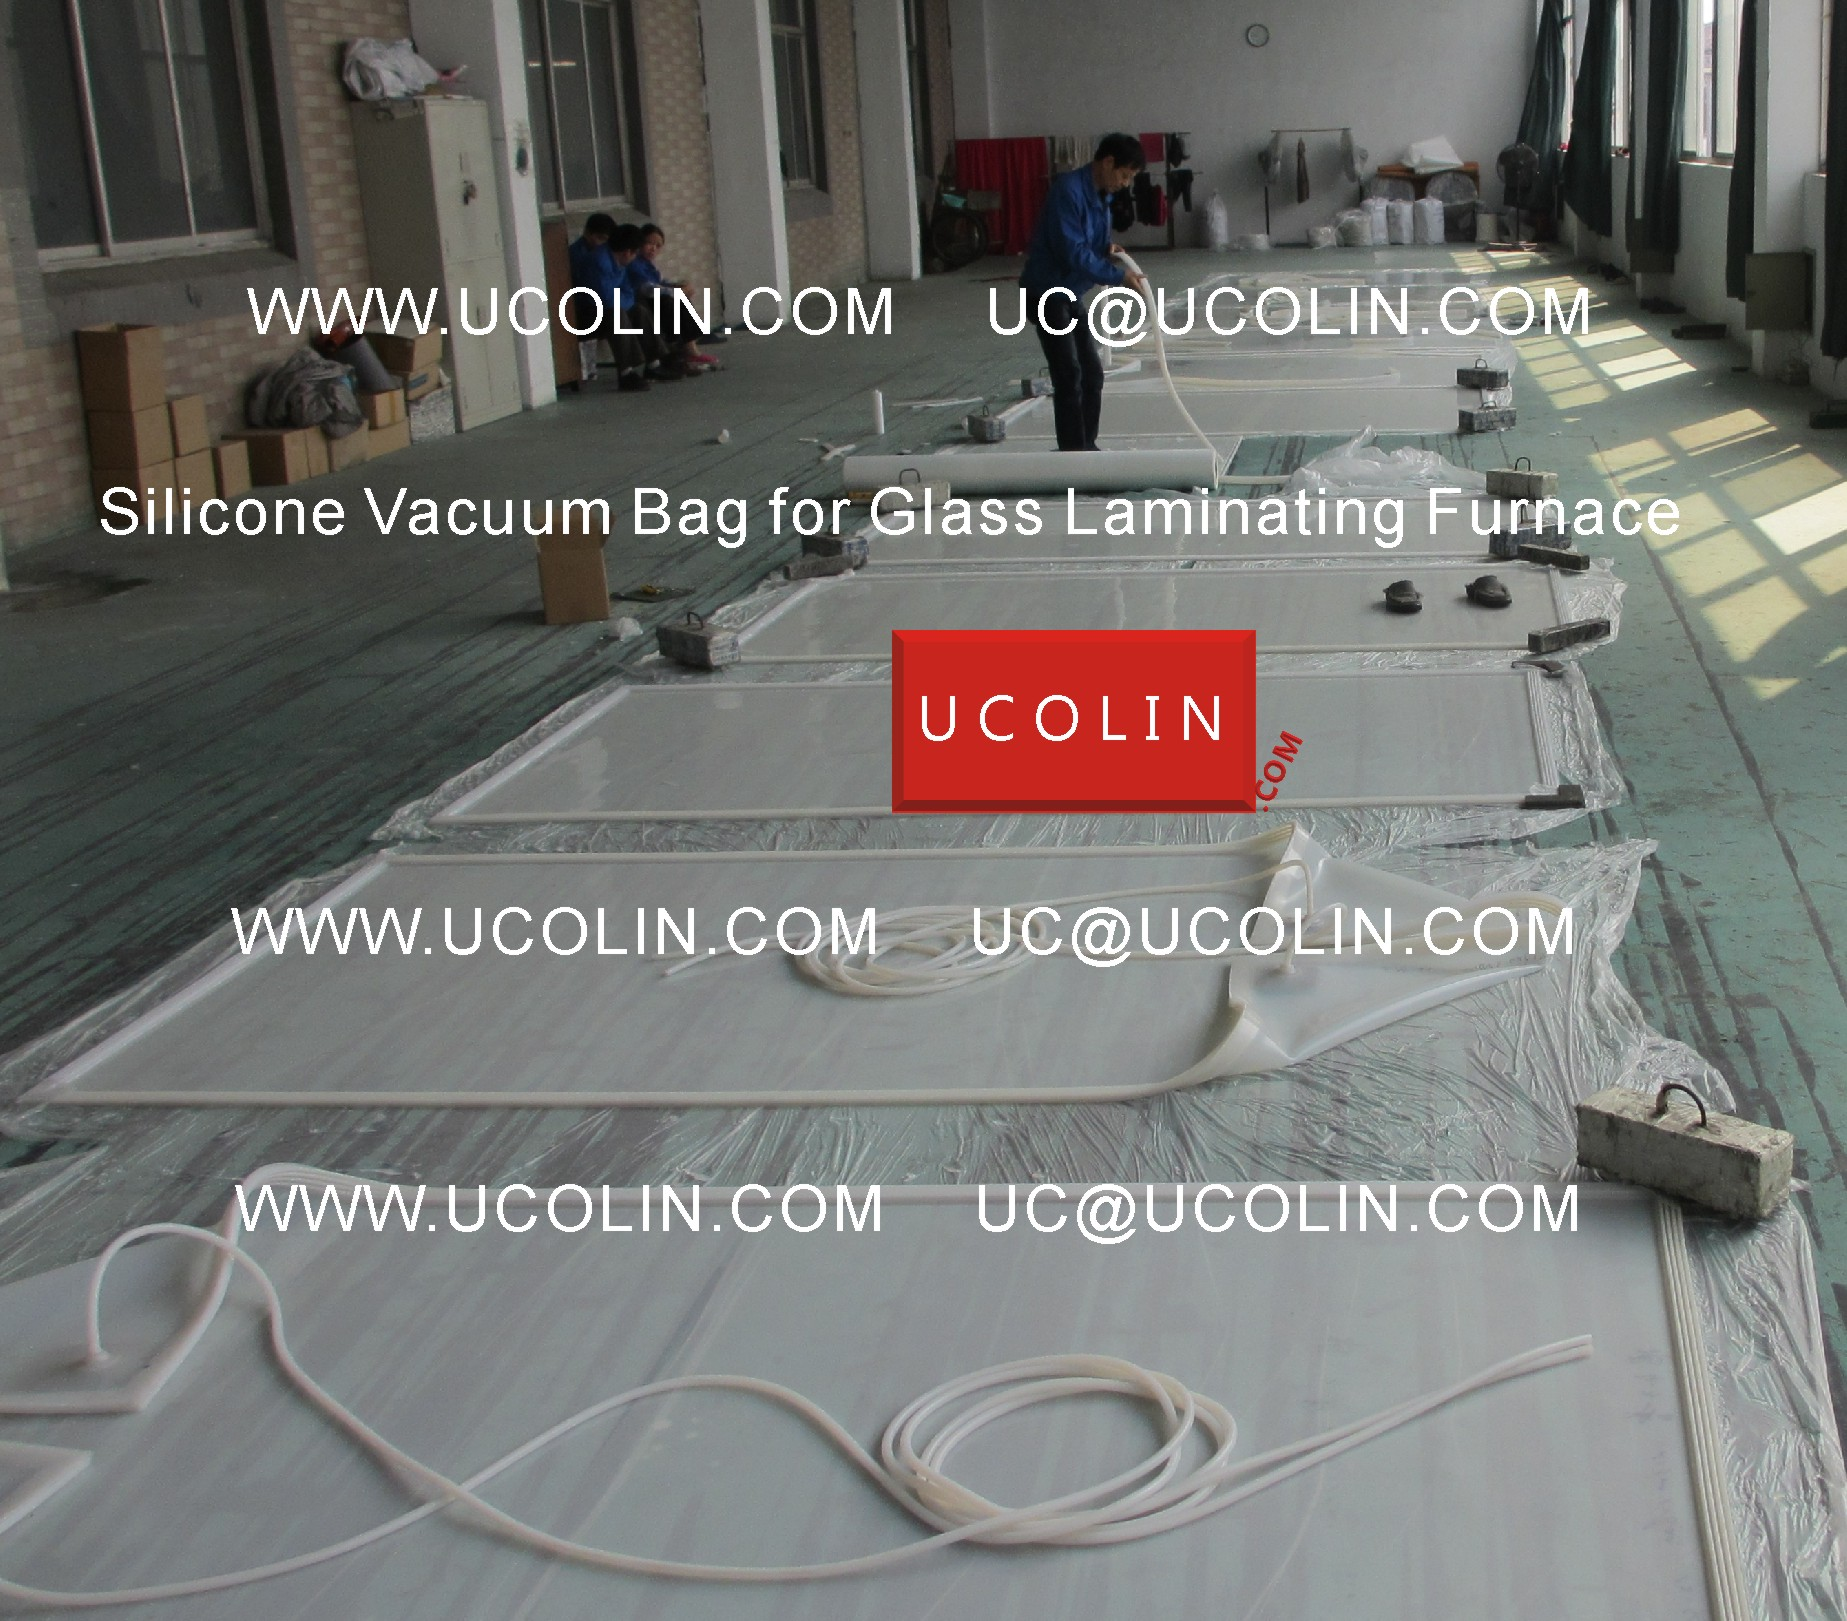 03 Producing of Silicone Vacuum Bag for Glass Laminating Furnace